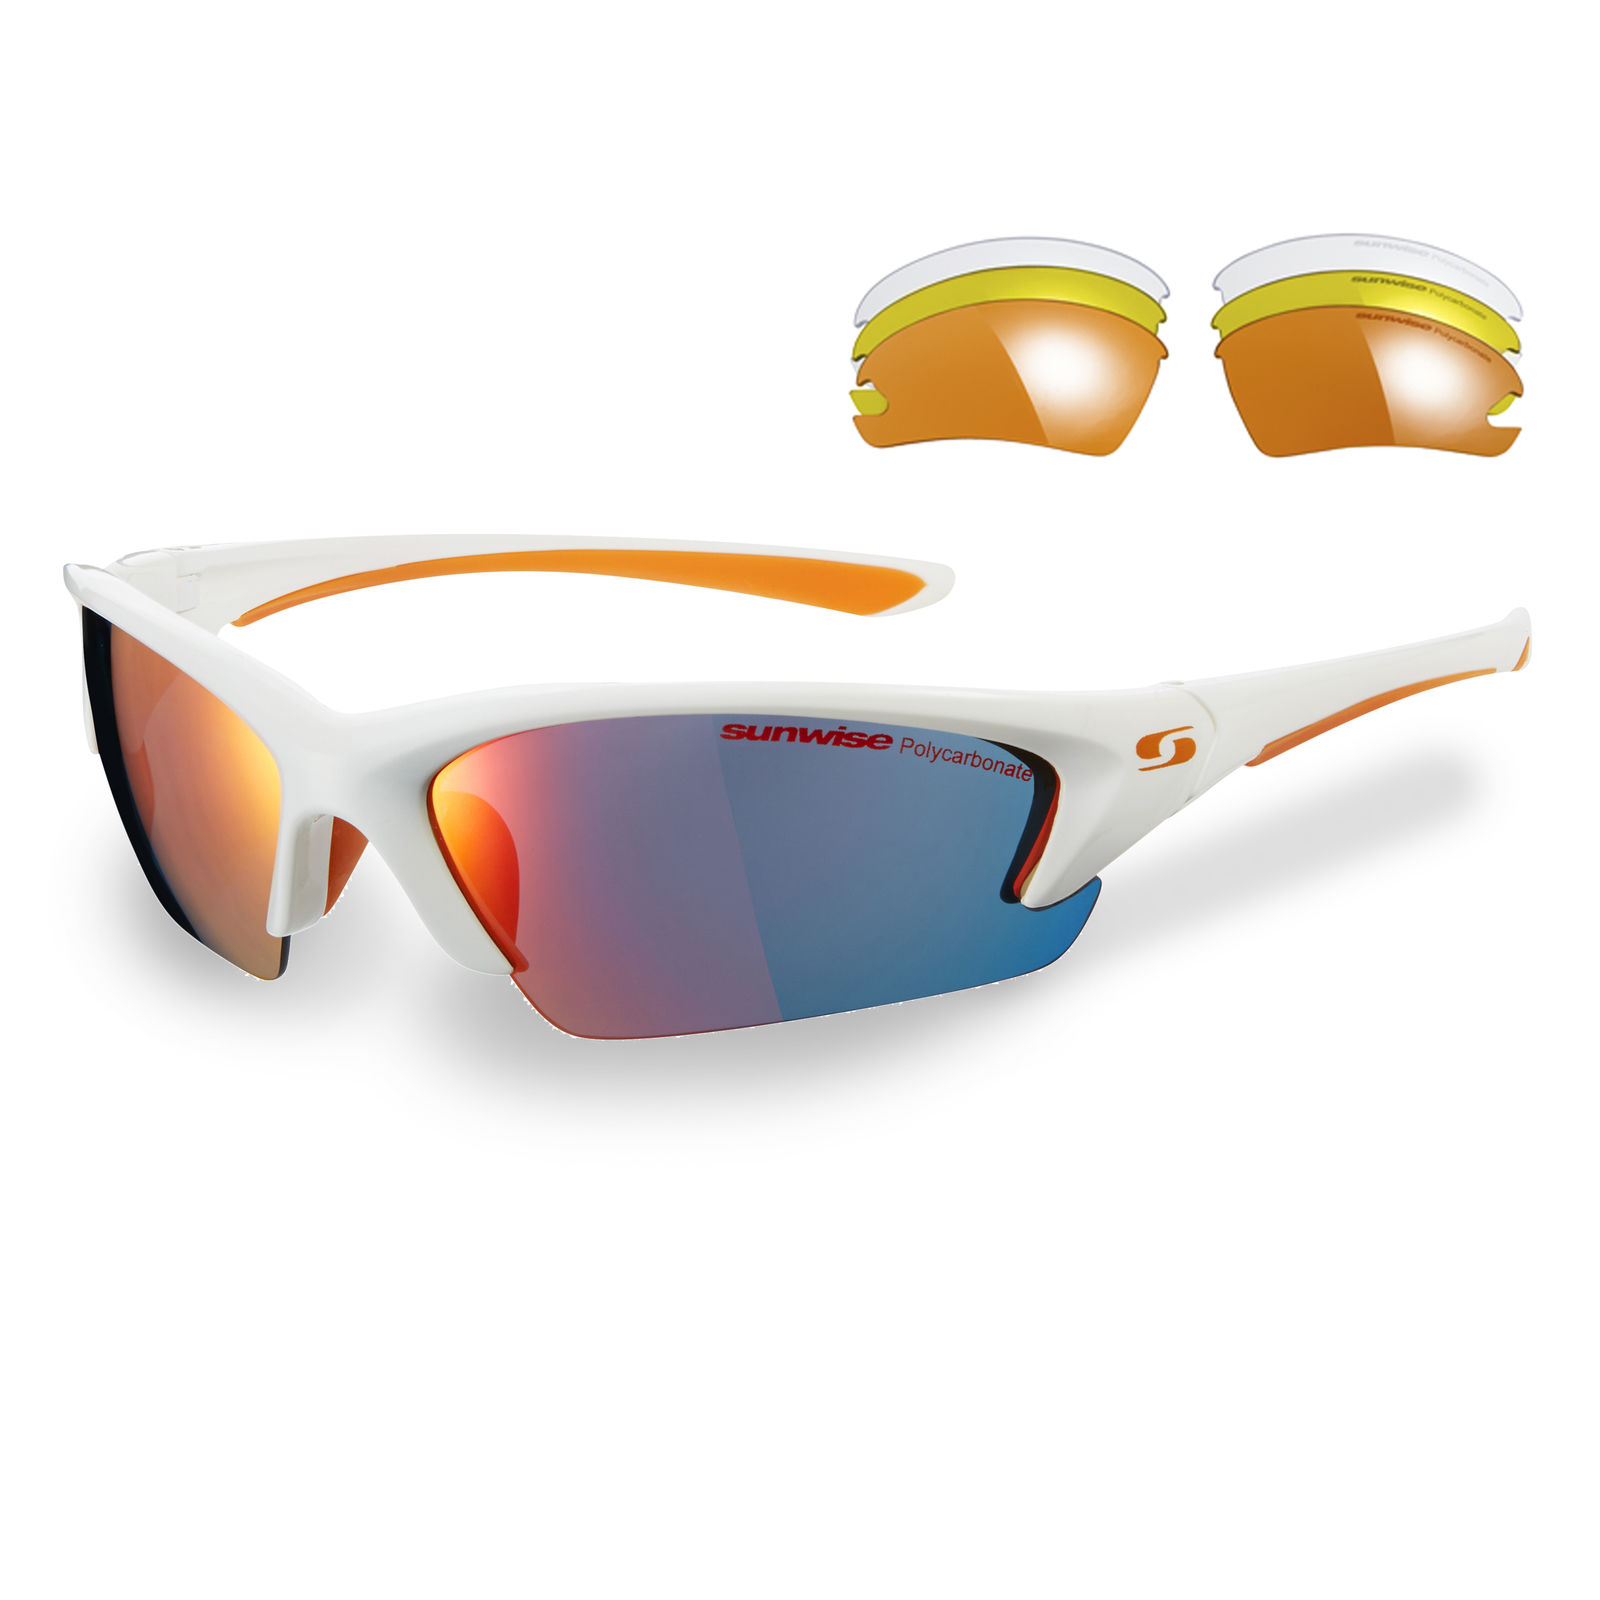 Sunwise Equinox RM White Sports Sunglasses with 4 Interchangeable ... 1cf22dcea97a